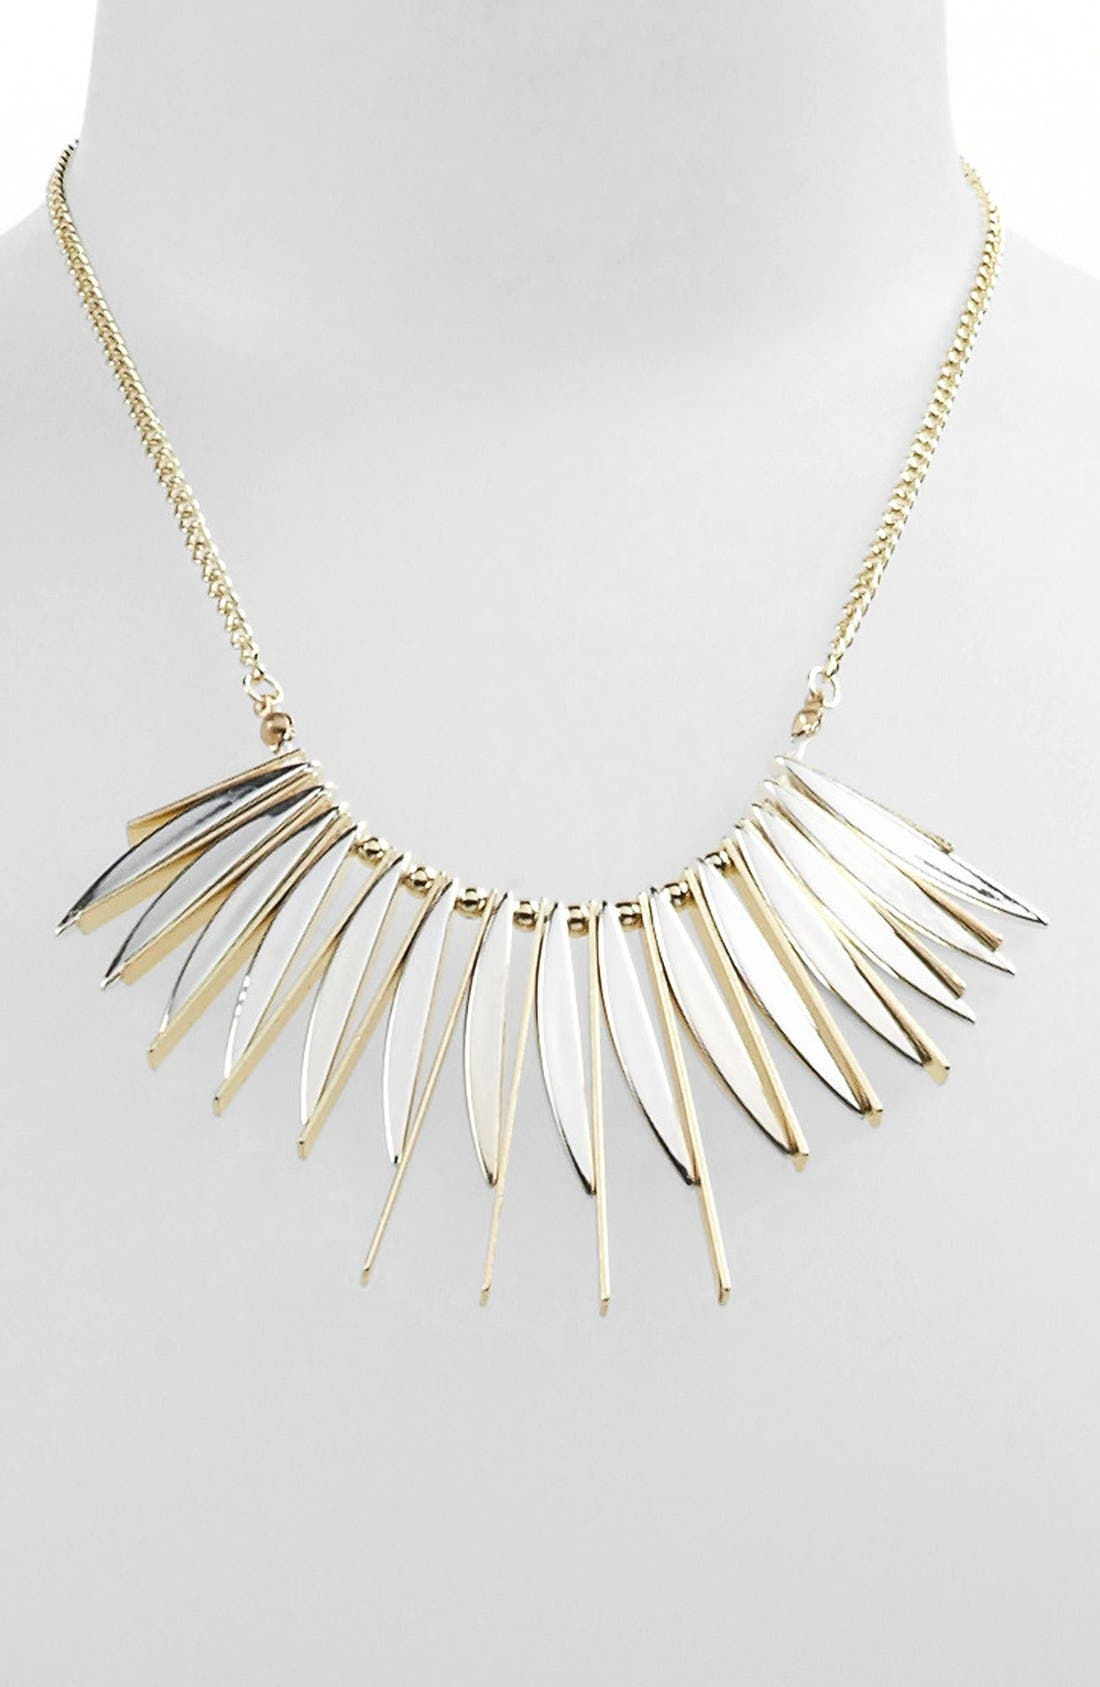 Alternate Image 1 Selected - Carole Spiked Necklace (Online Exclusive)